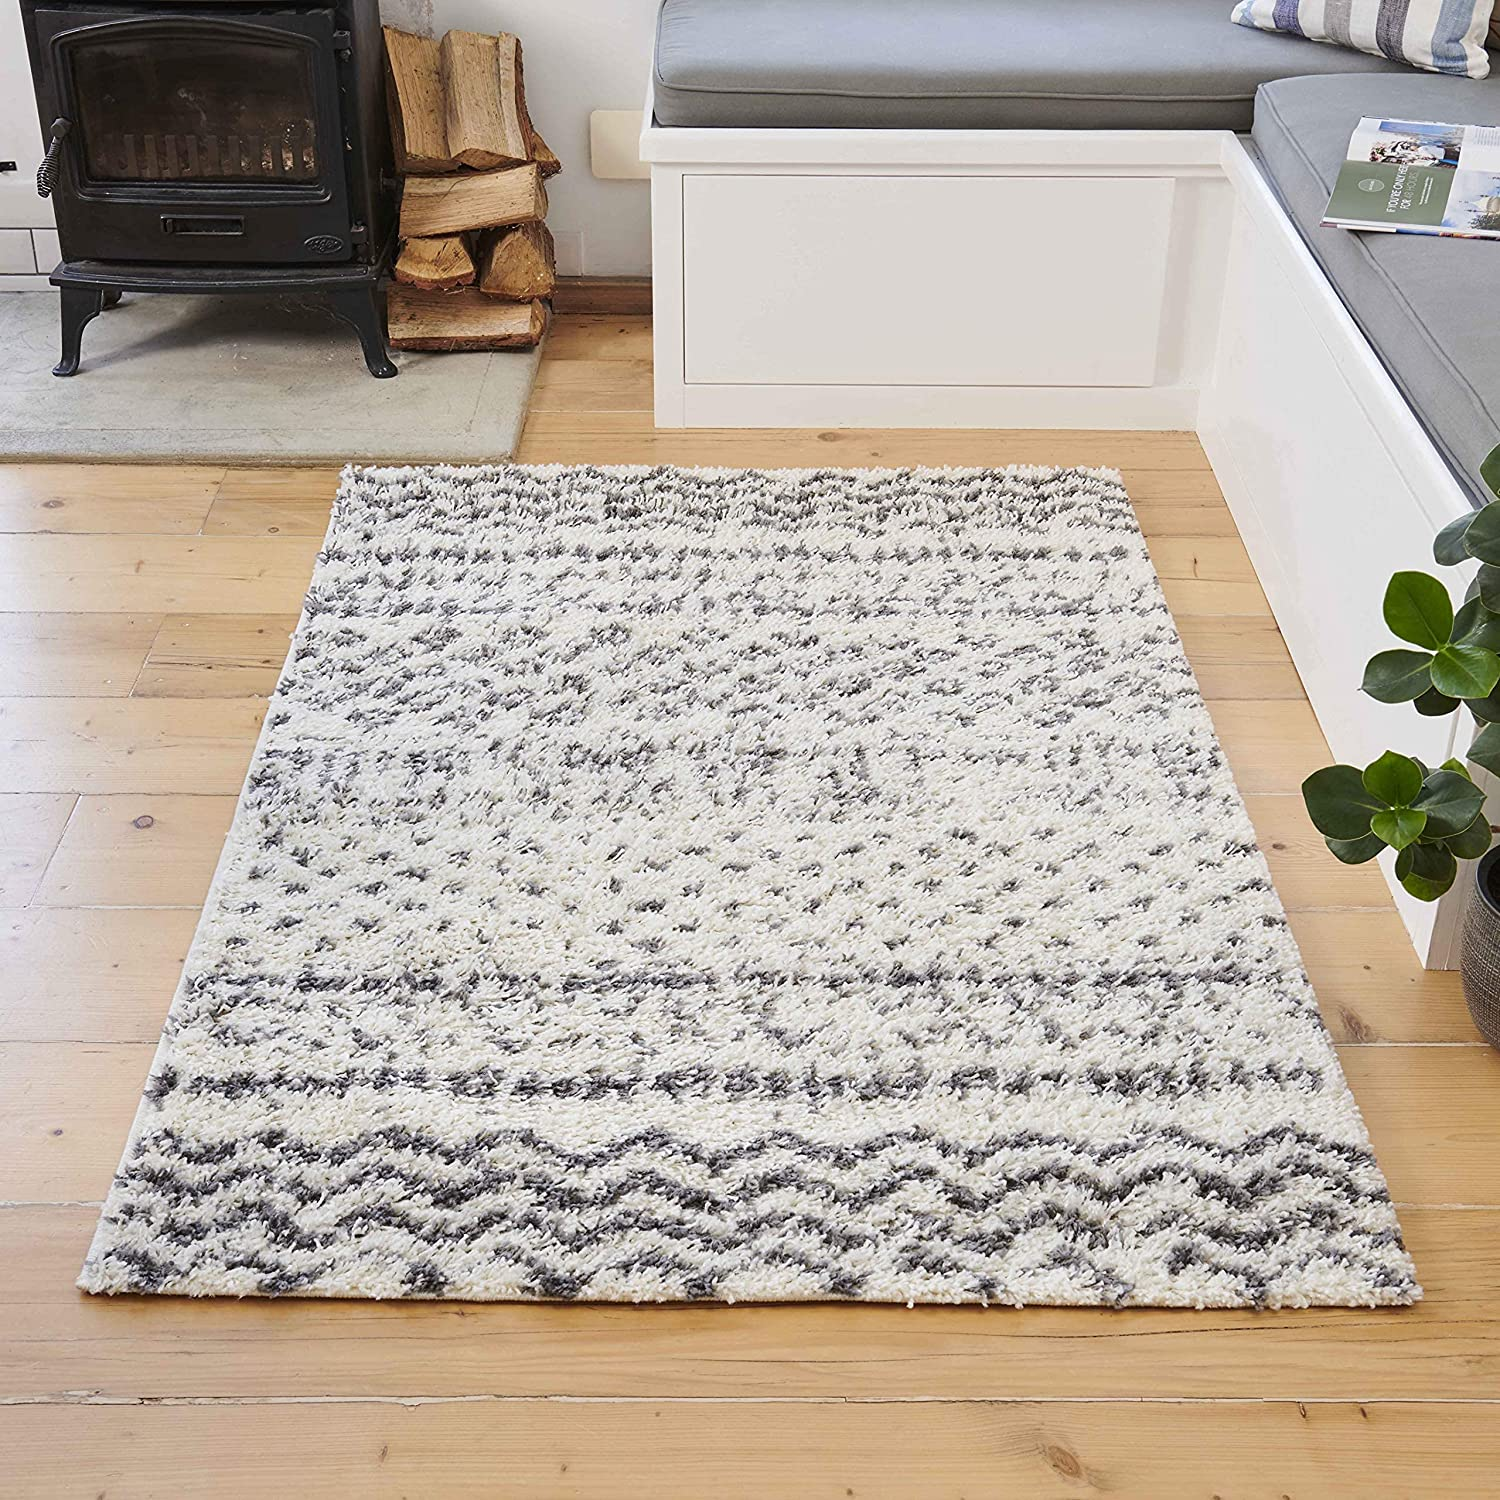 Aztec Cream and Gray Striped Tribal Luxurious Geometr Rug Shaggy Direct store Super intense SALE